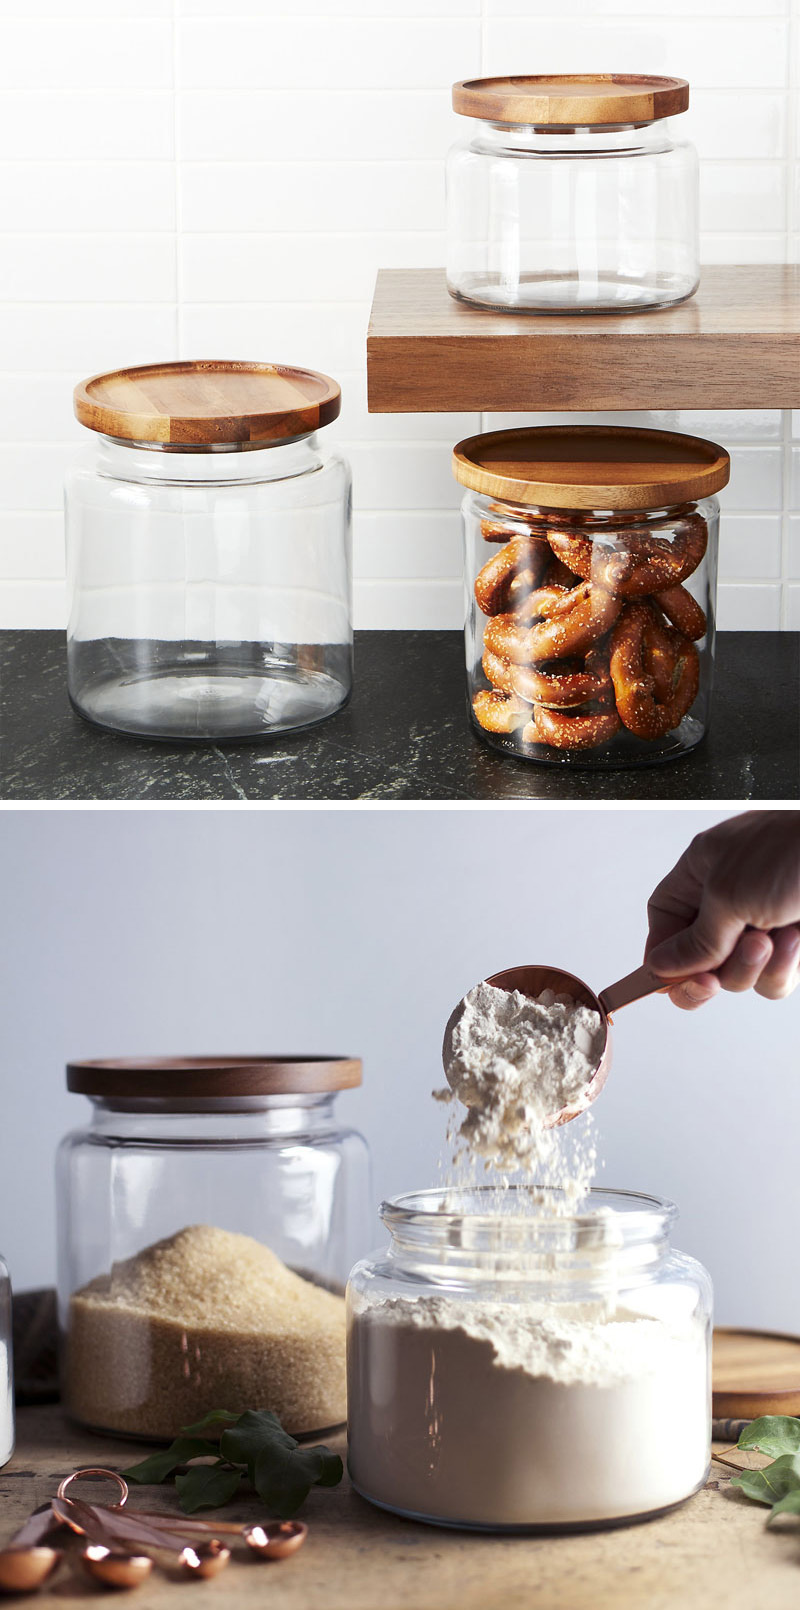 With a gorgeous acacia wood lid to keep food fresh, these modern clear glass jars make it easy to see all of the delectable snacks inside.